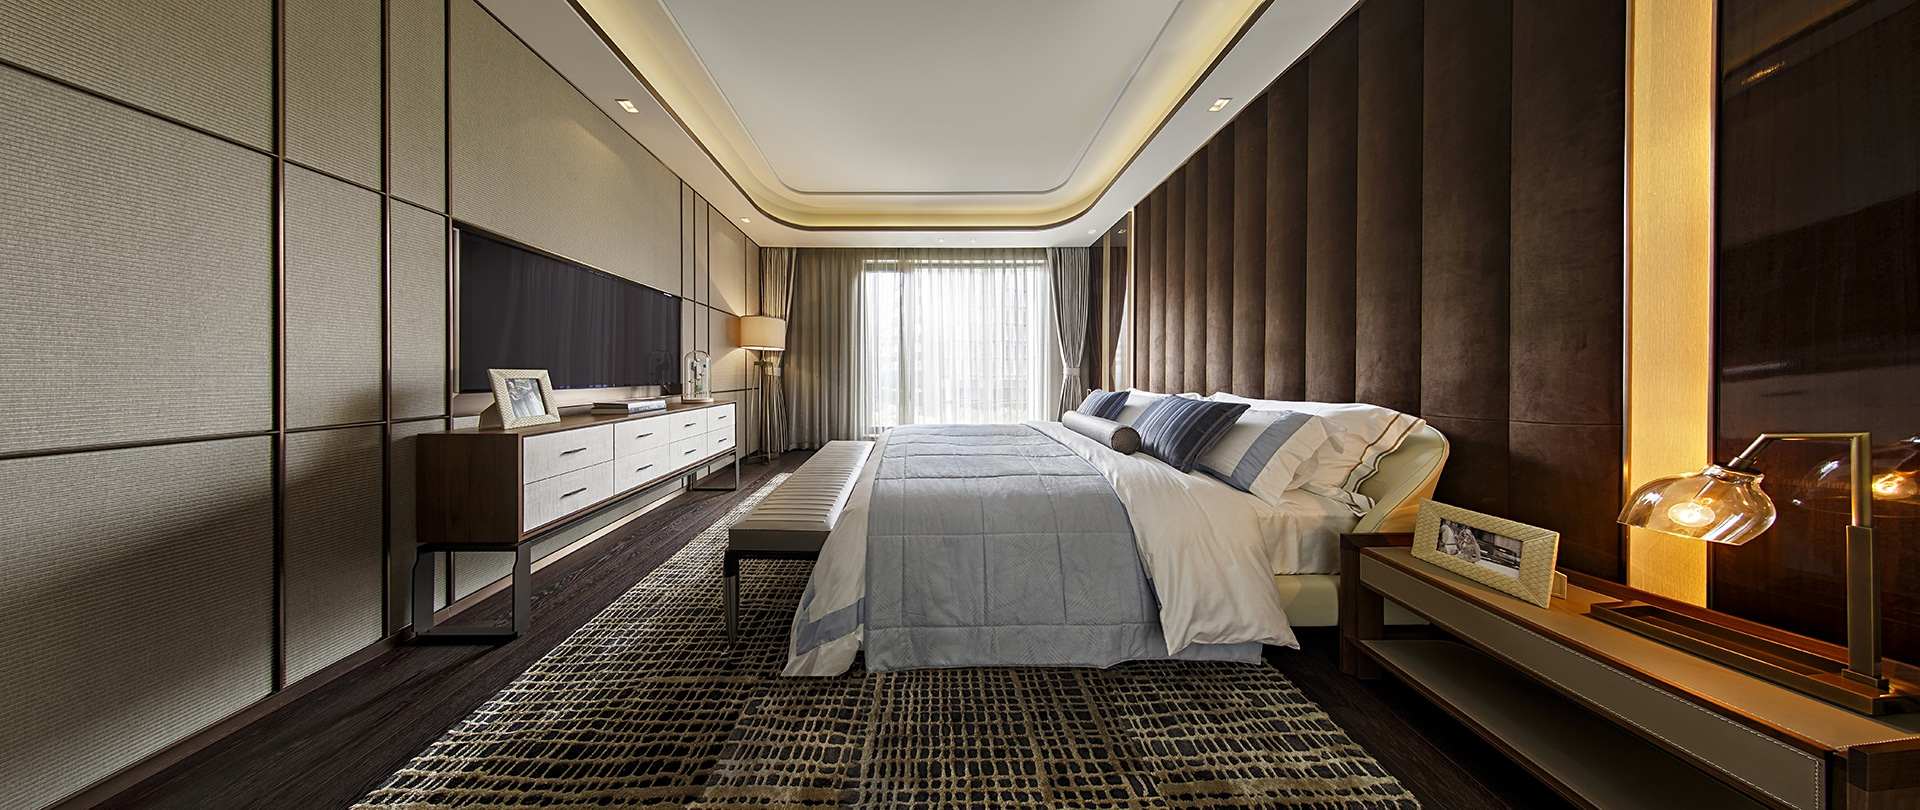 China, Bedroom, Bedroom Interiors, Bedroom Design, Interior Design, Shanghai, China